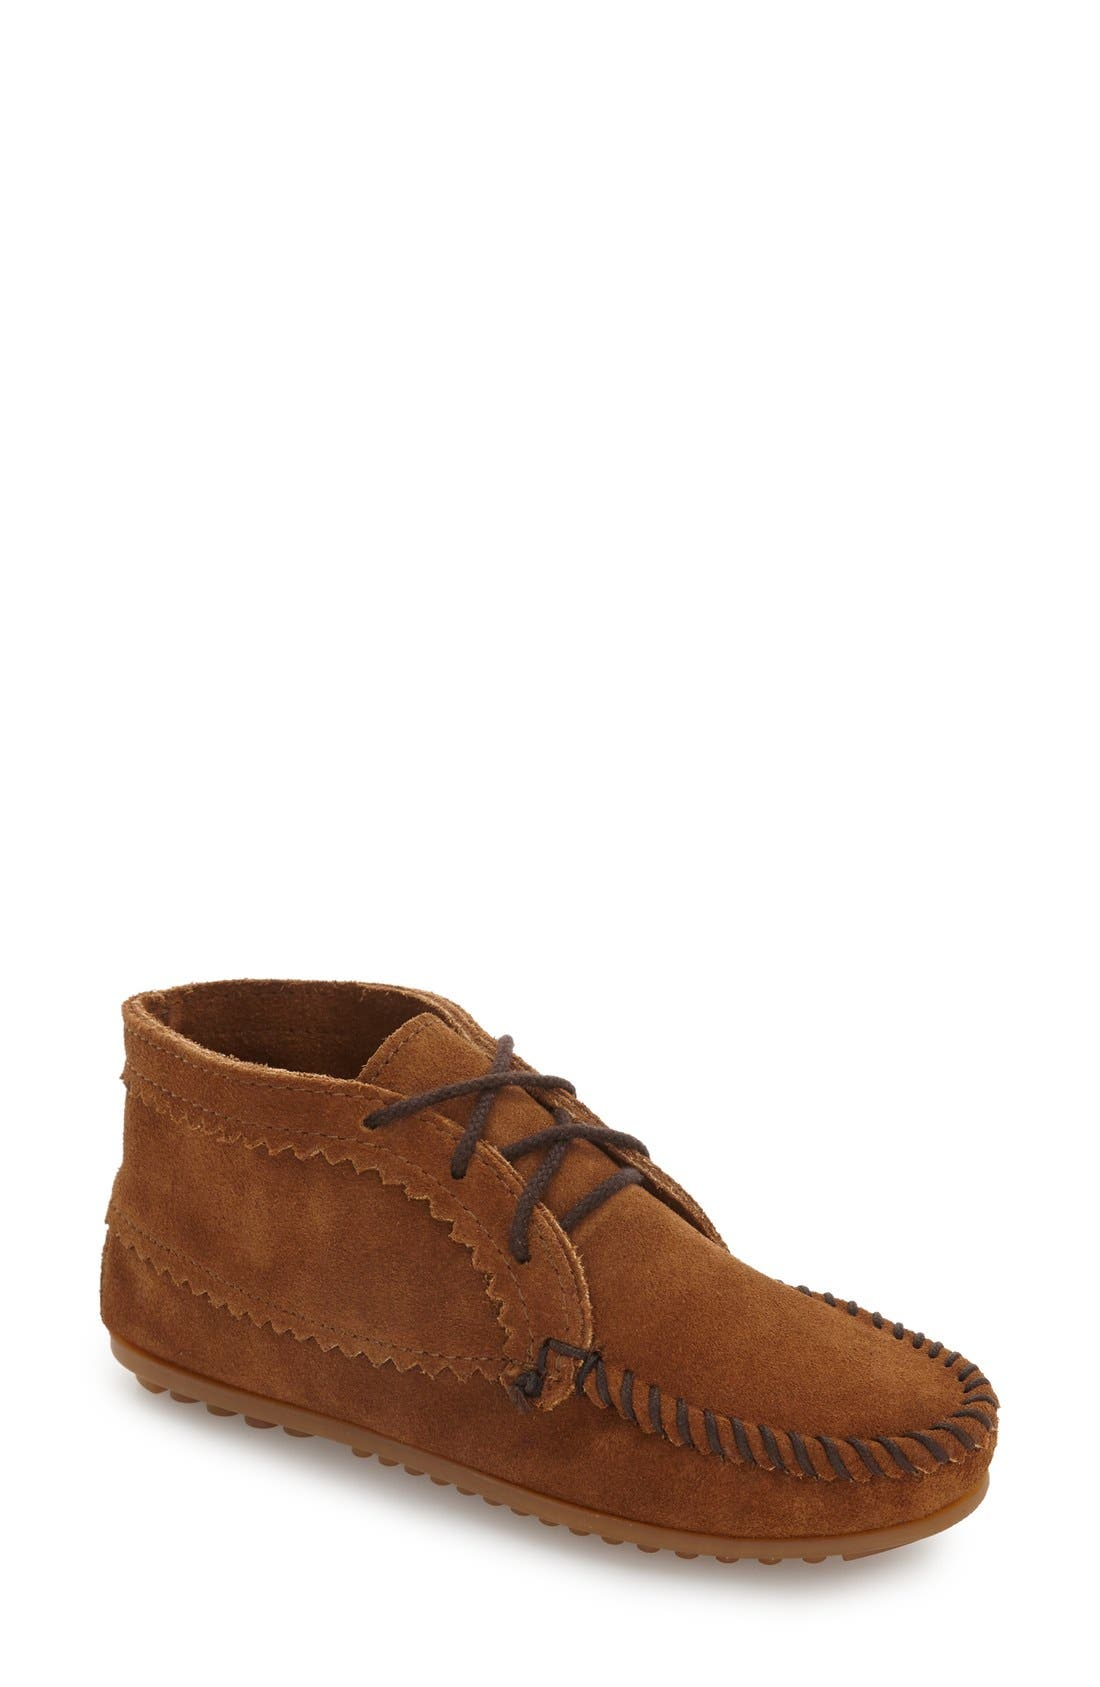 Chukka Moccasin Boot,                         Main,                         color, DUSTY BROWN